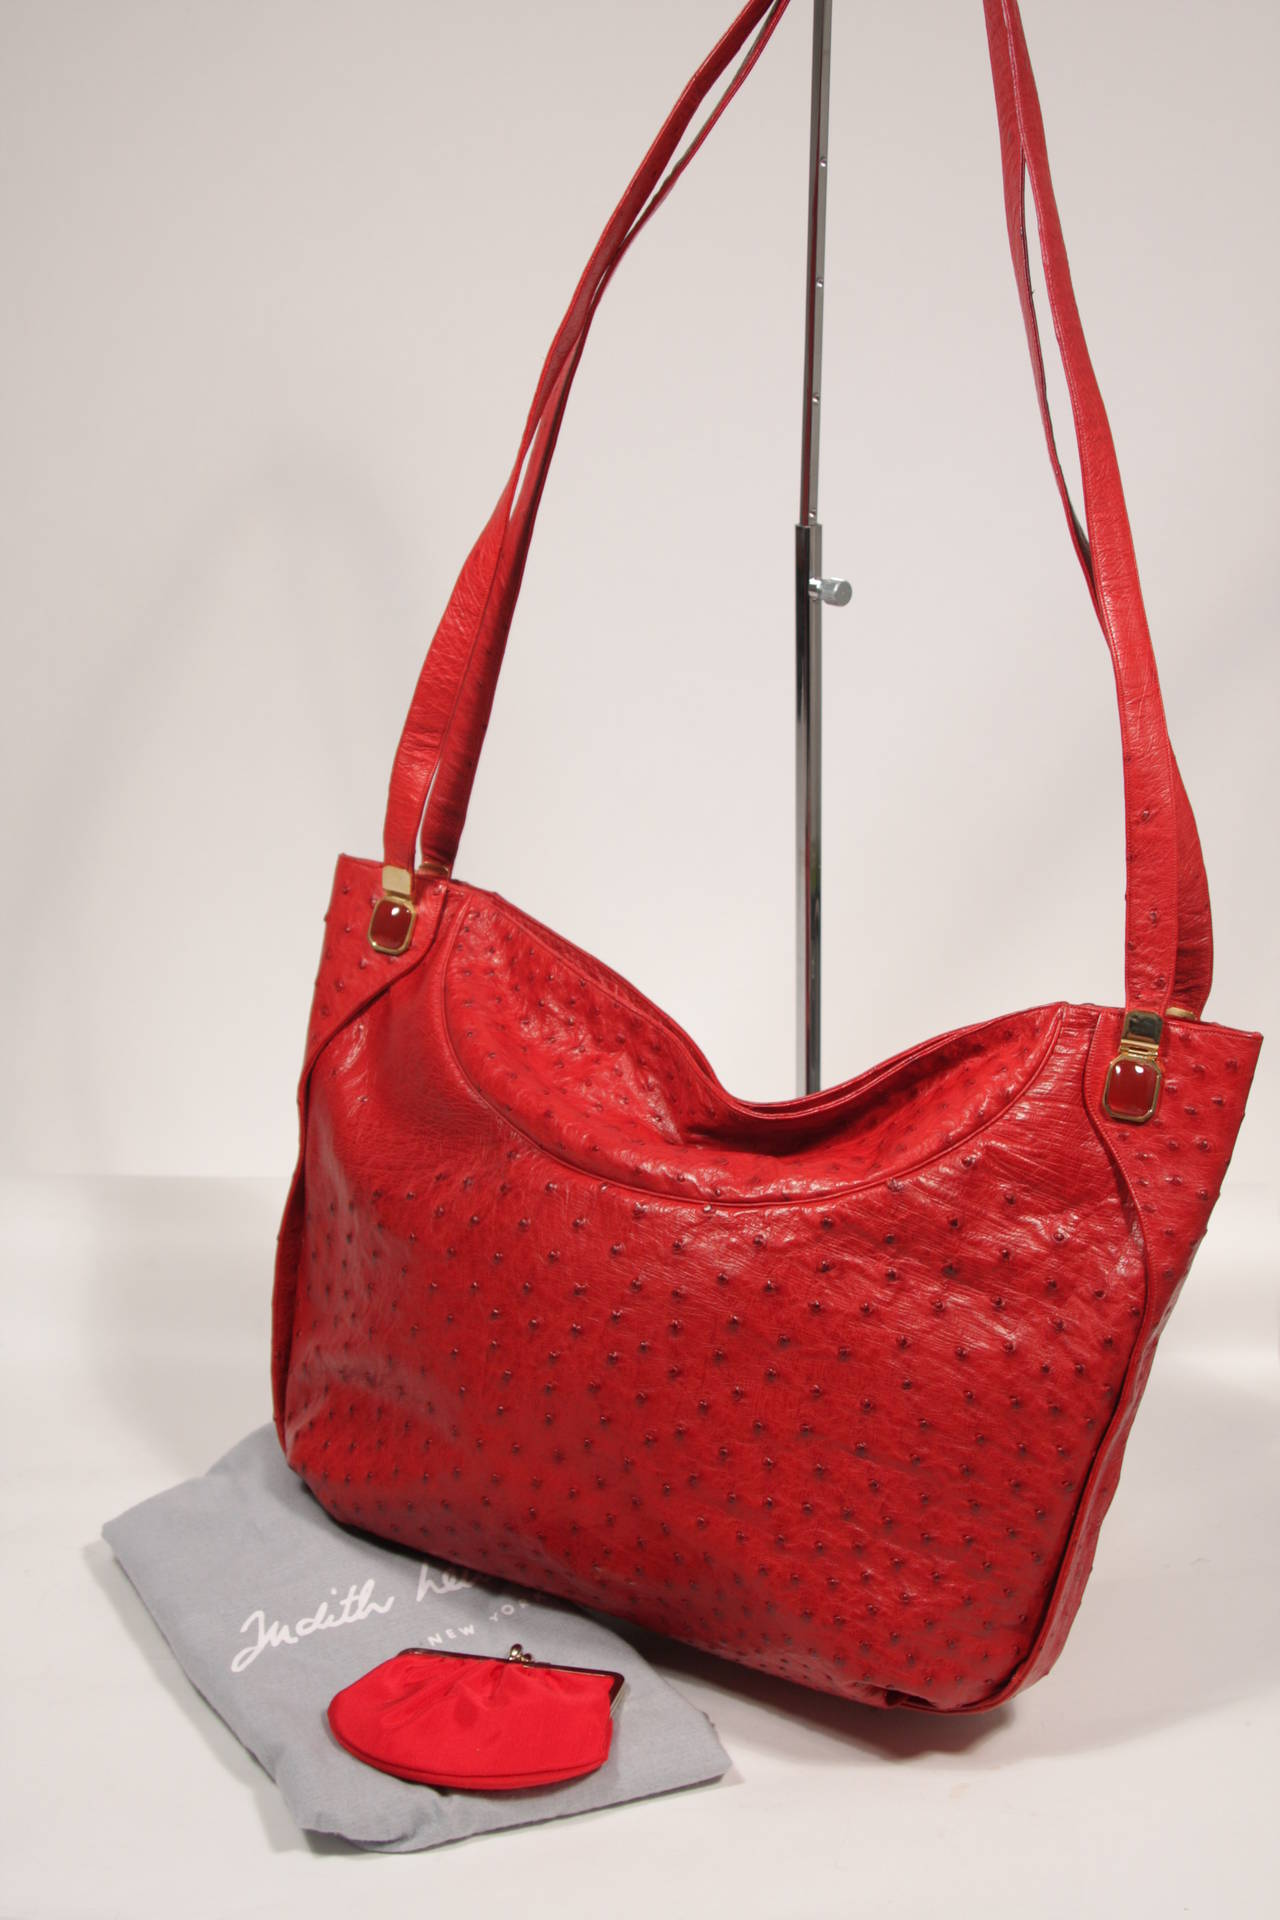 Judith Leiber Extra Large Red Ostrich Purse 9